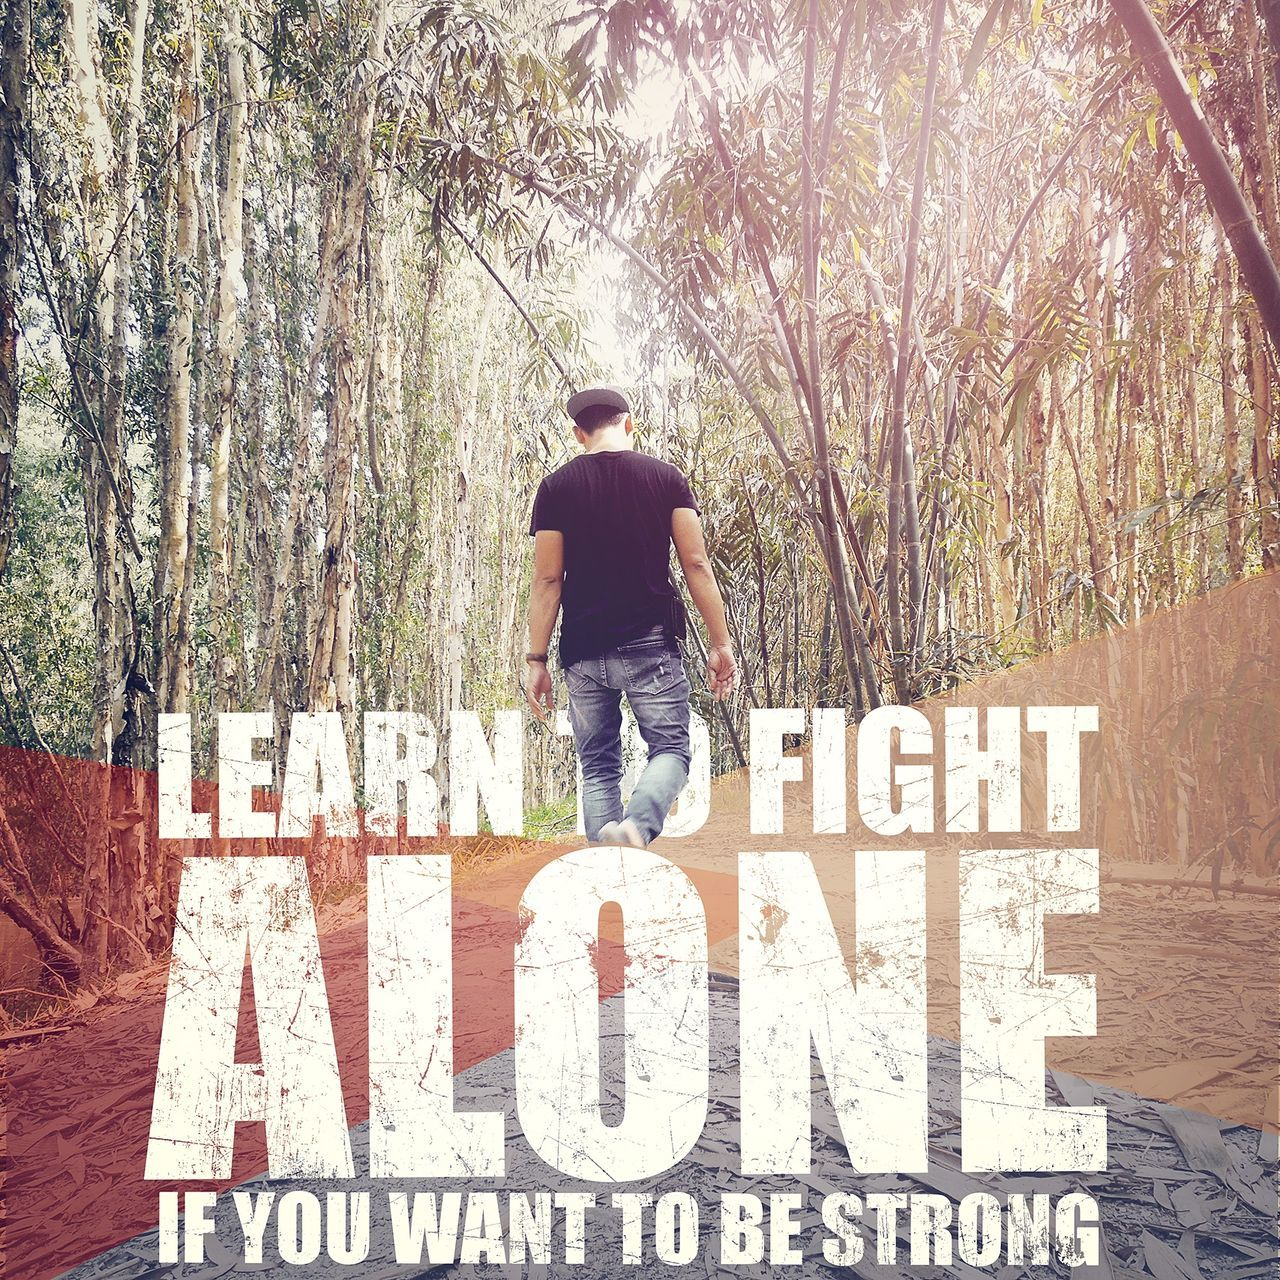 Alone Time Stronger! Quotes Viet Nam Vintage Photo Angiang Travelling Taking Photos